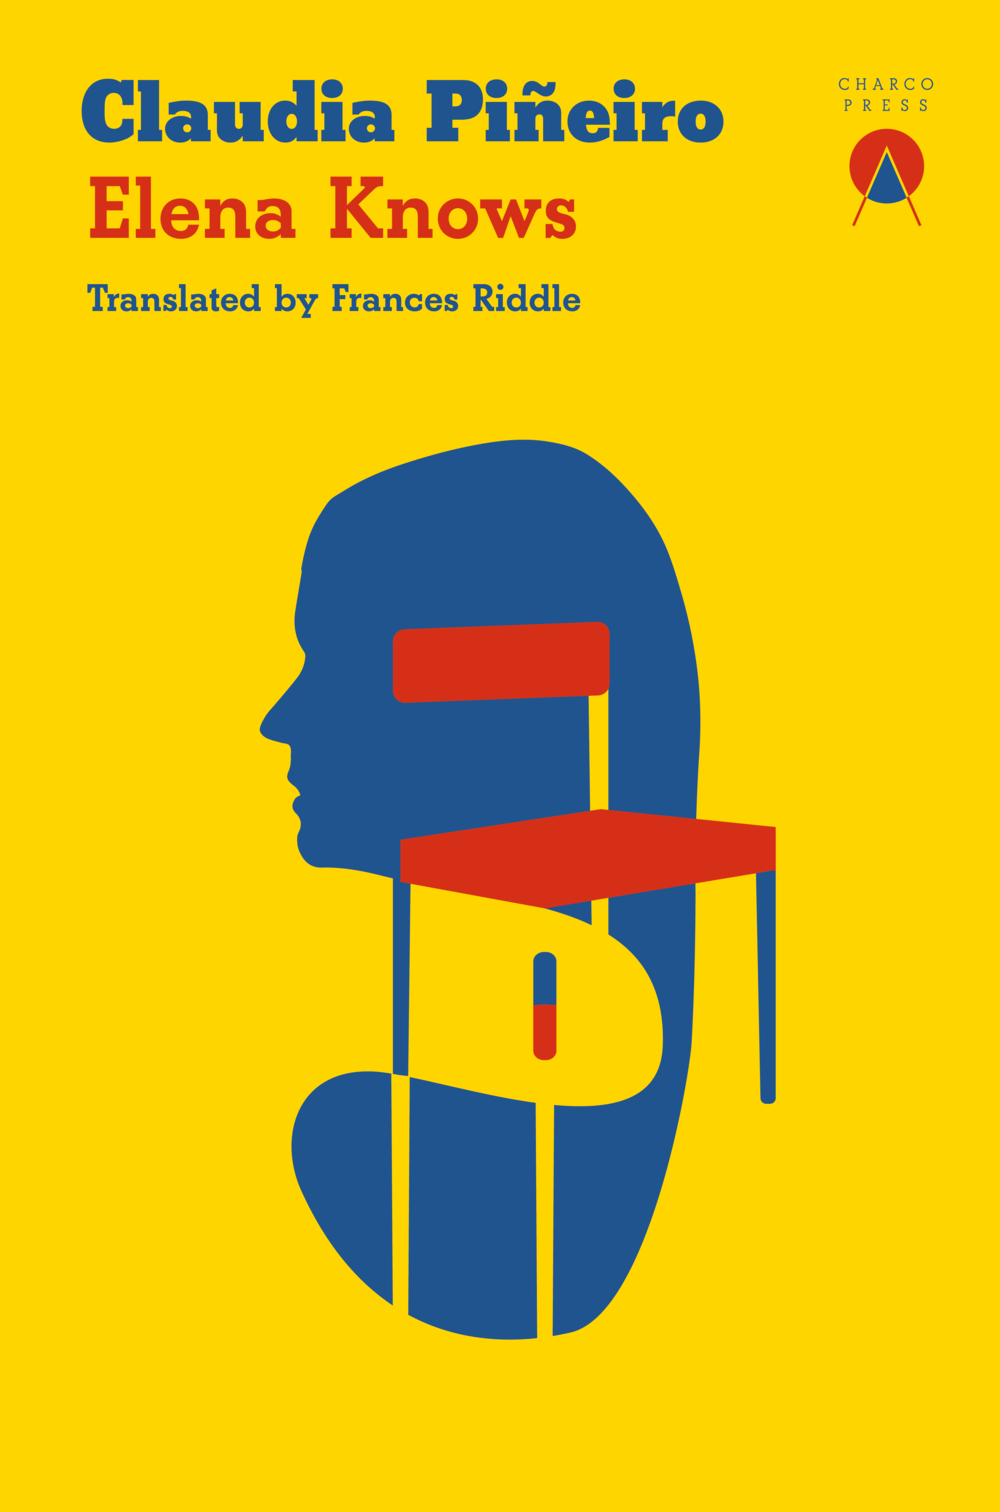 Elena Knows by Claudia Piñeiro, translated by Frances Riddle